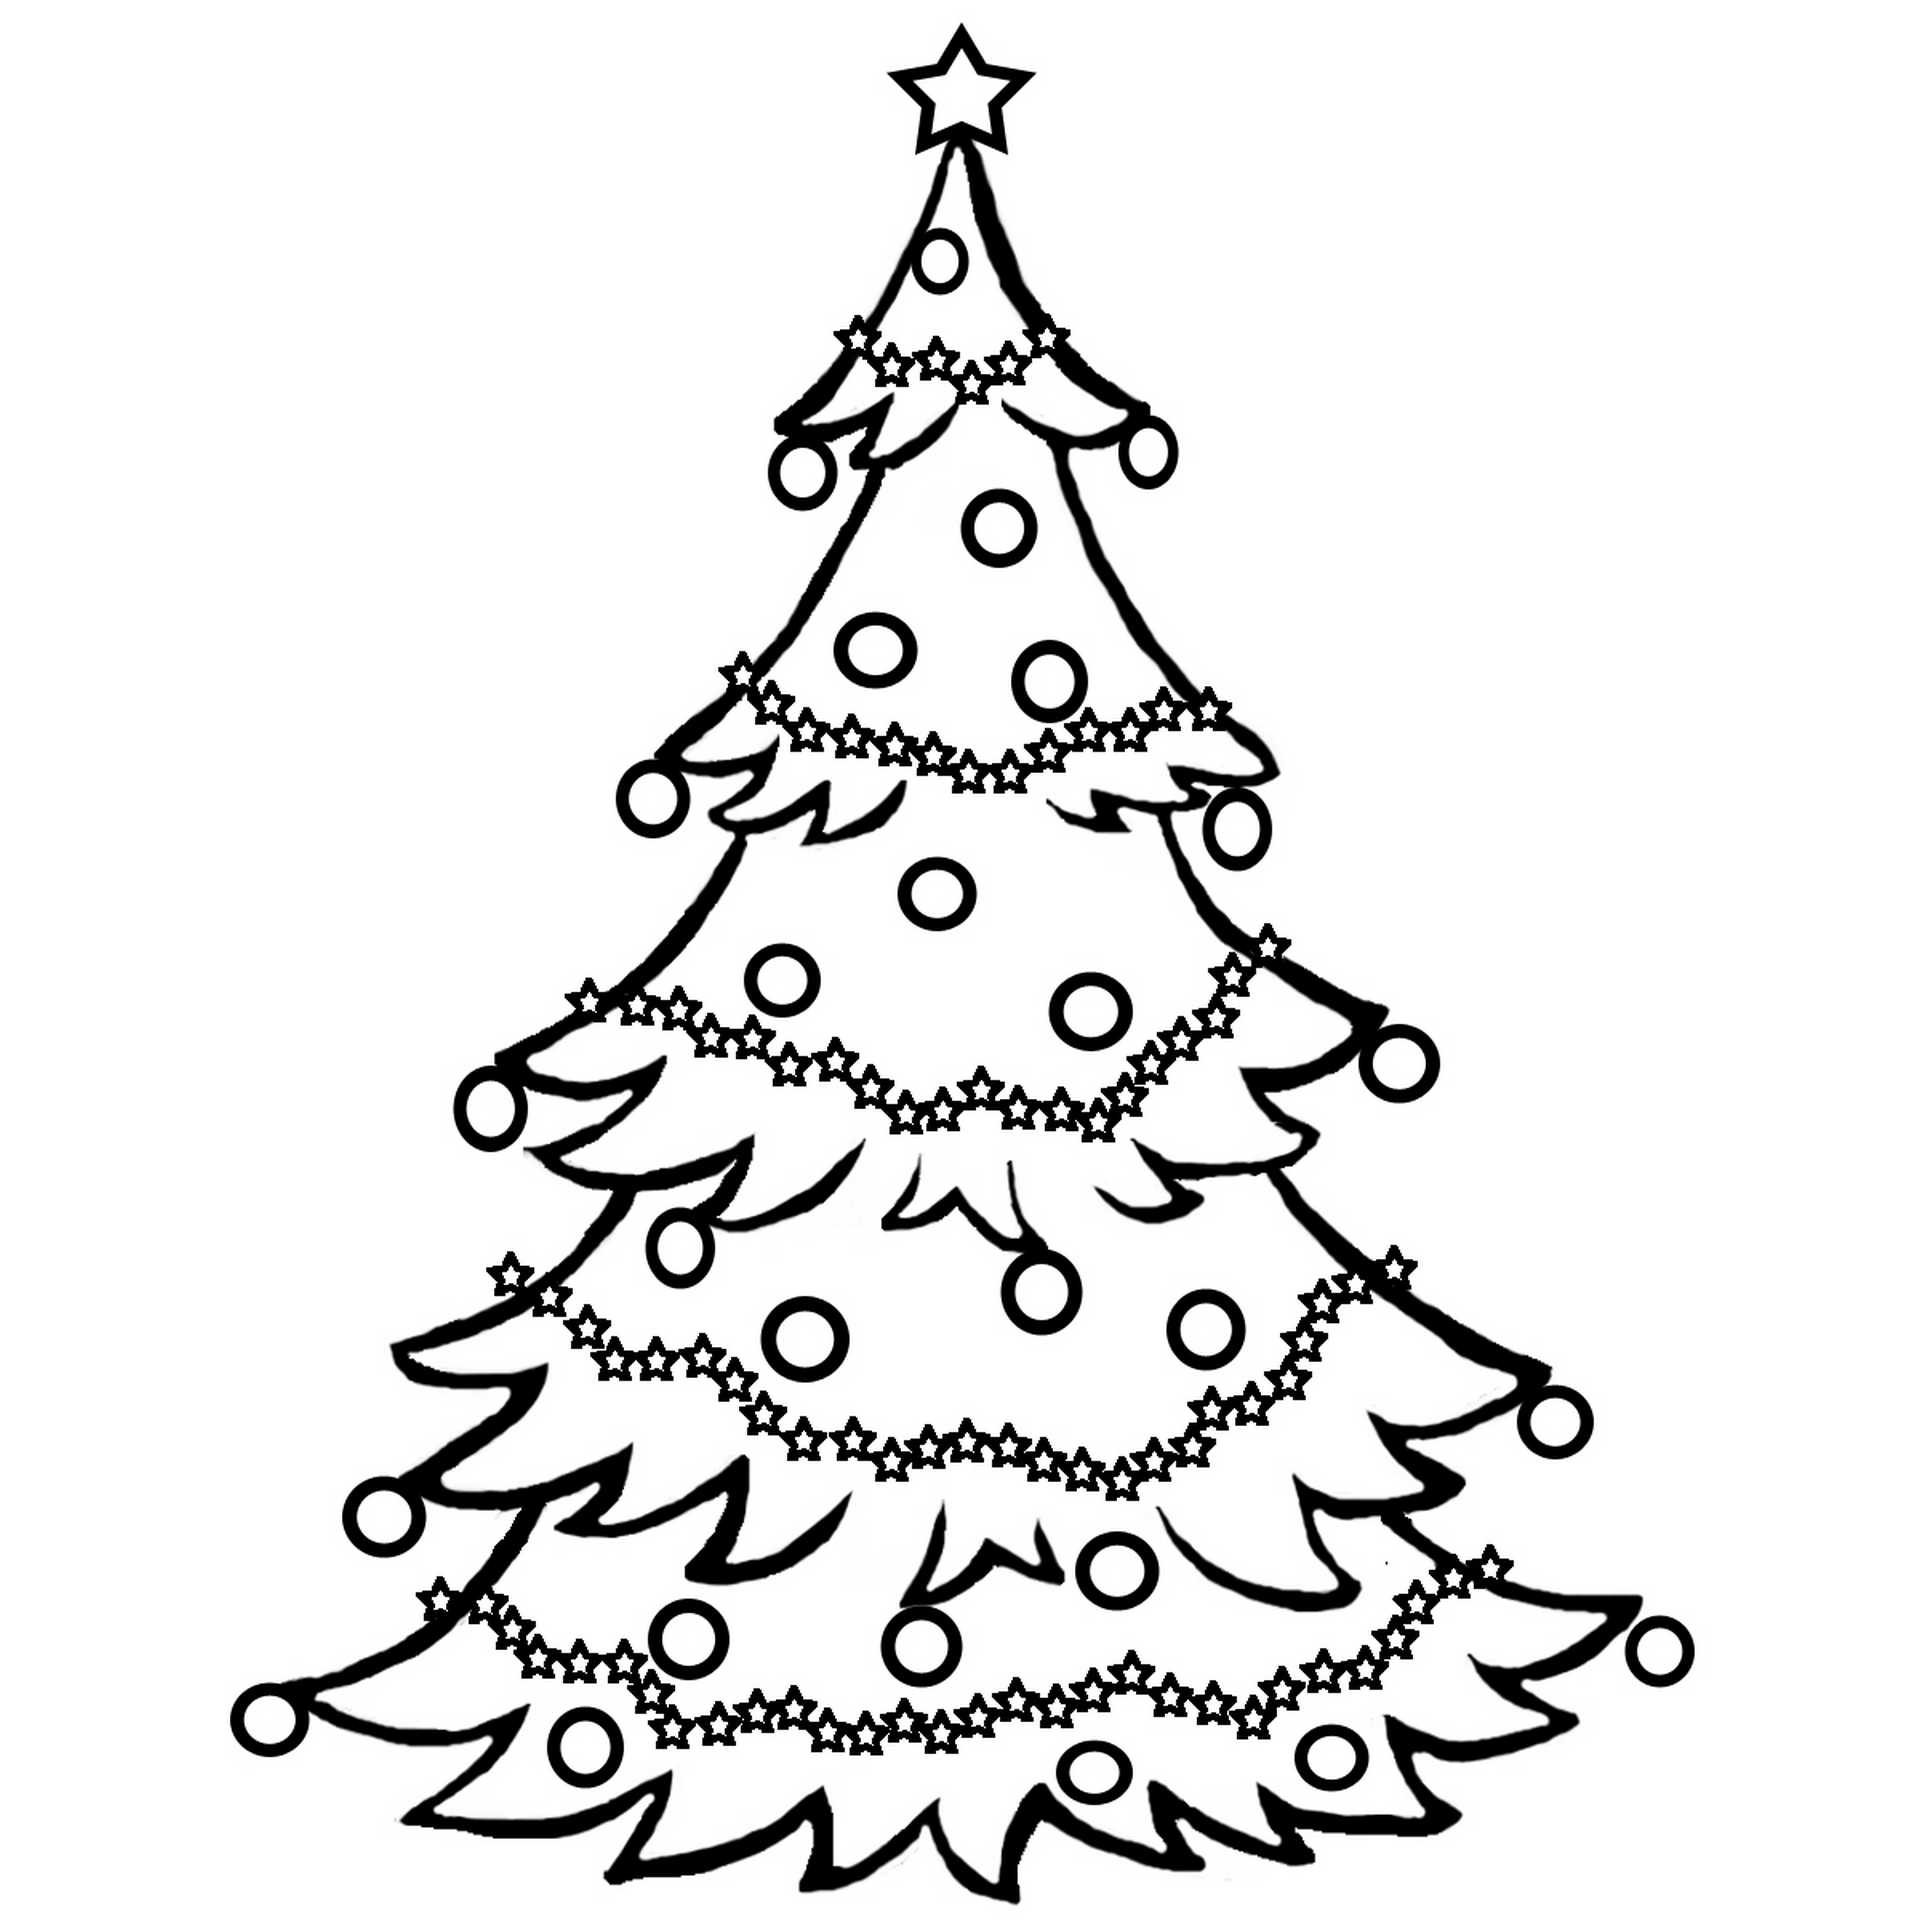 Christmas Tree Coloring Pages Free With Page Printable And Gamz Me